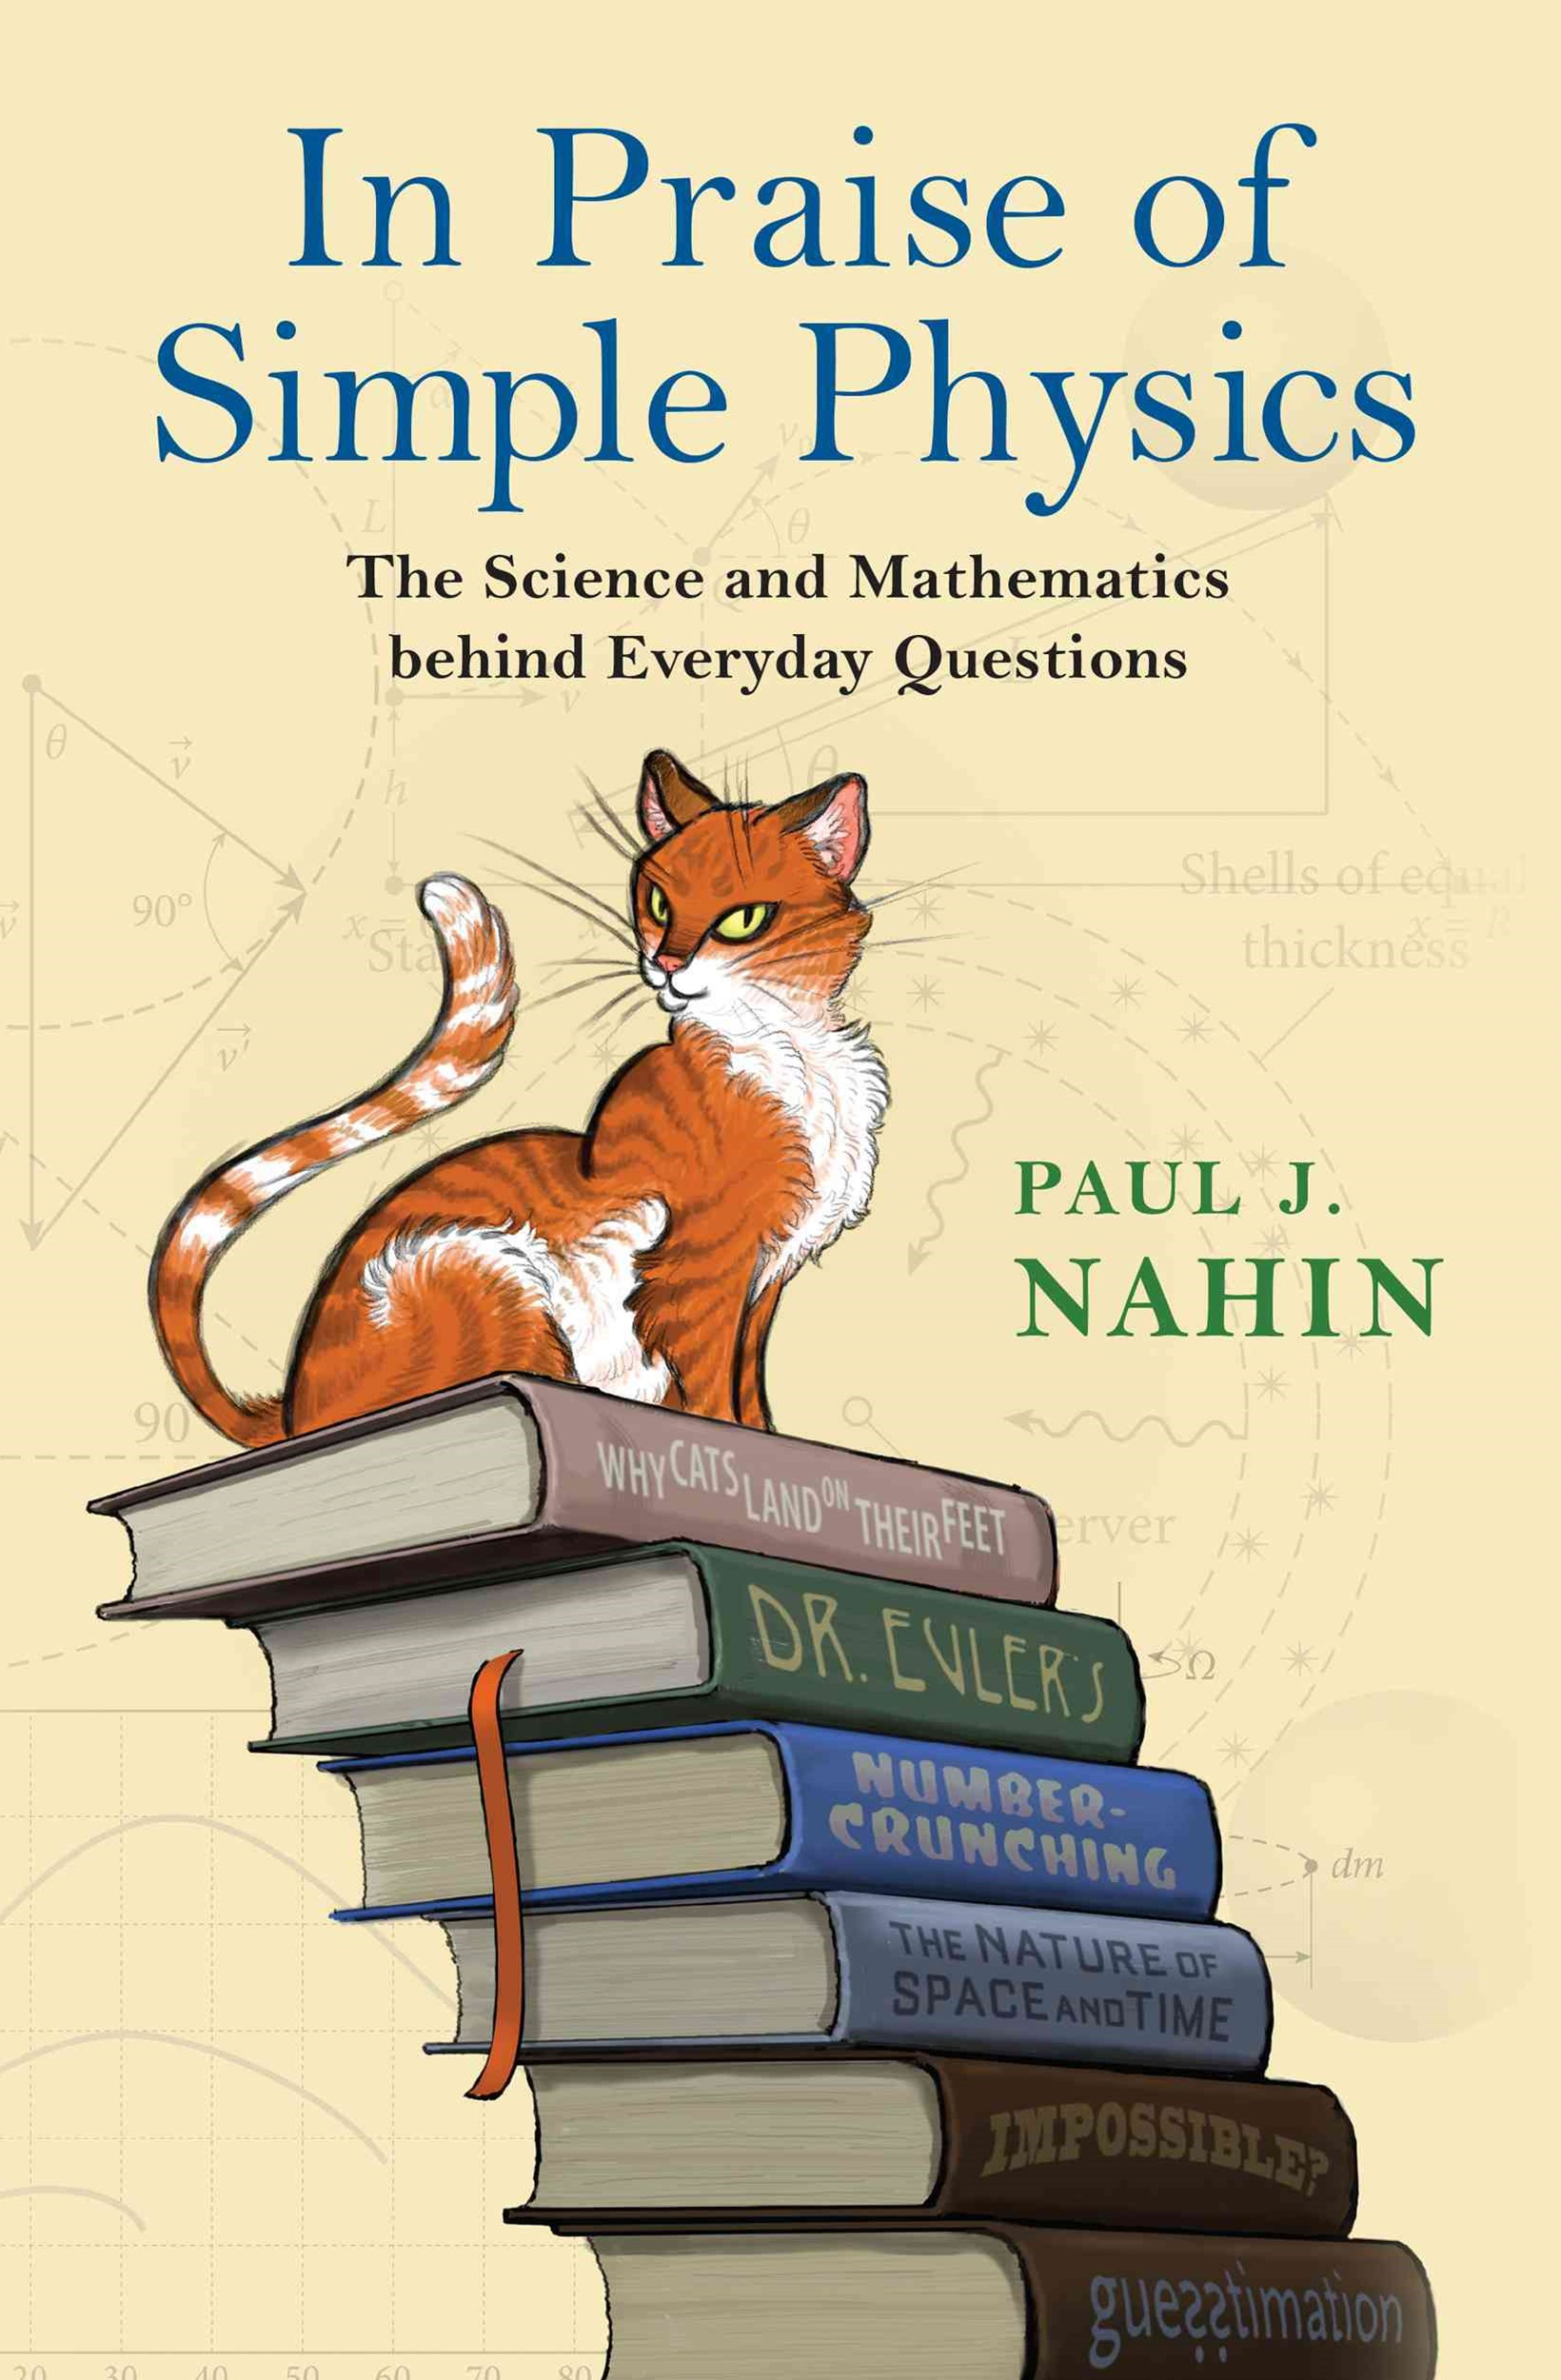 In Praise of Simple Physics